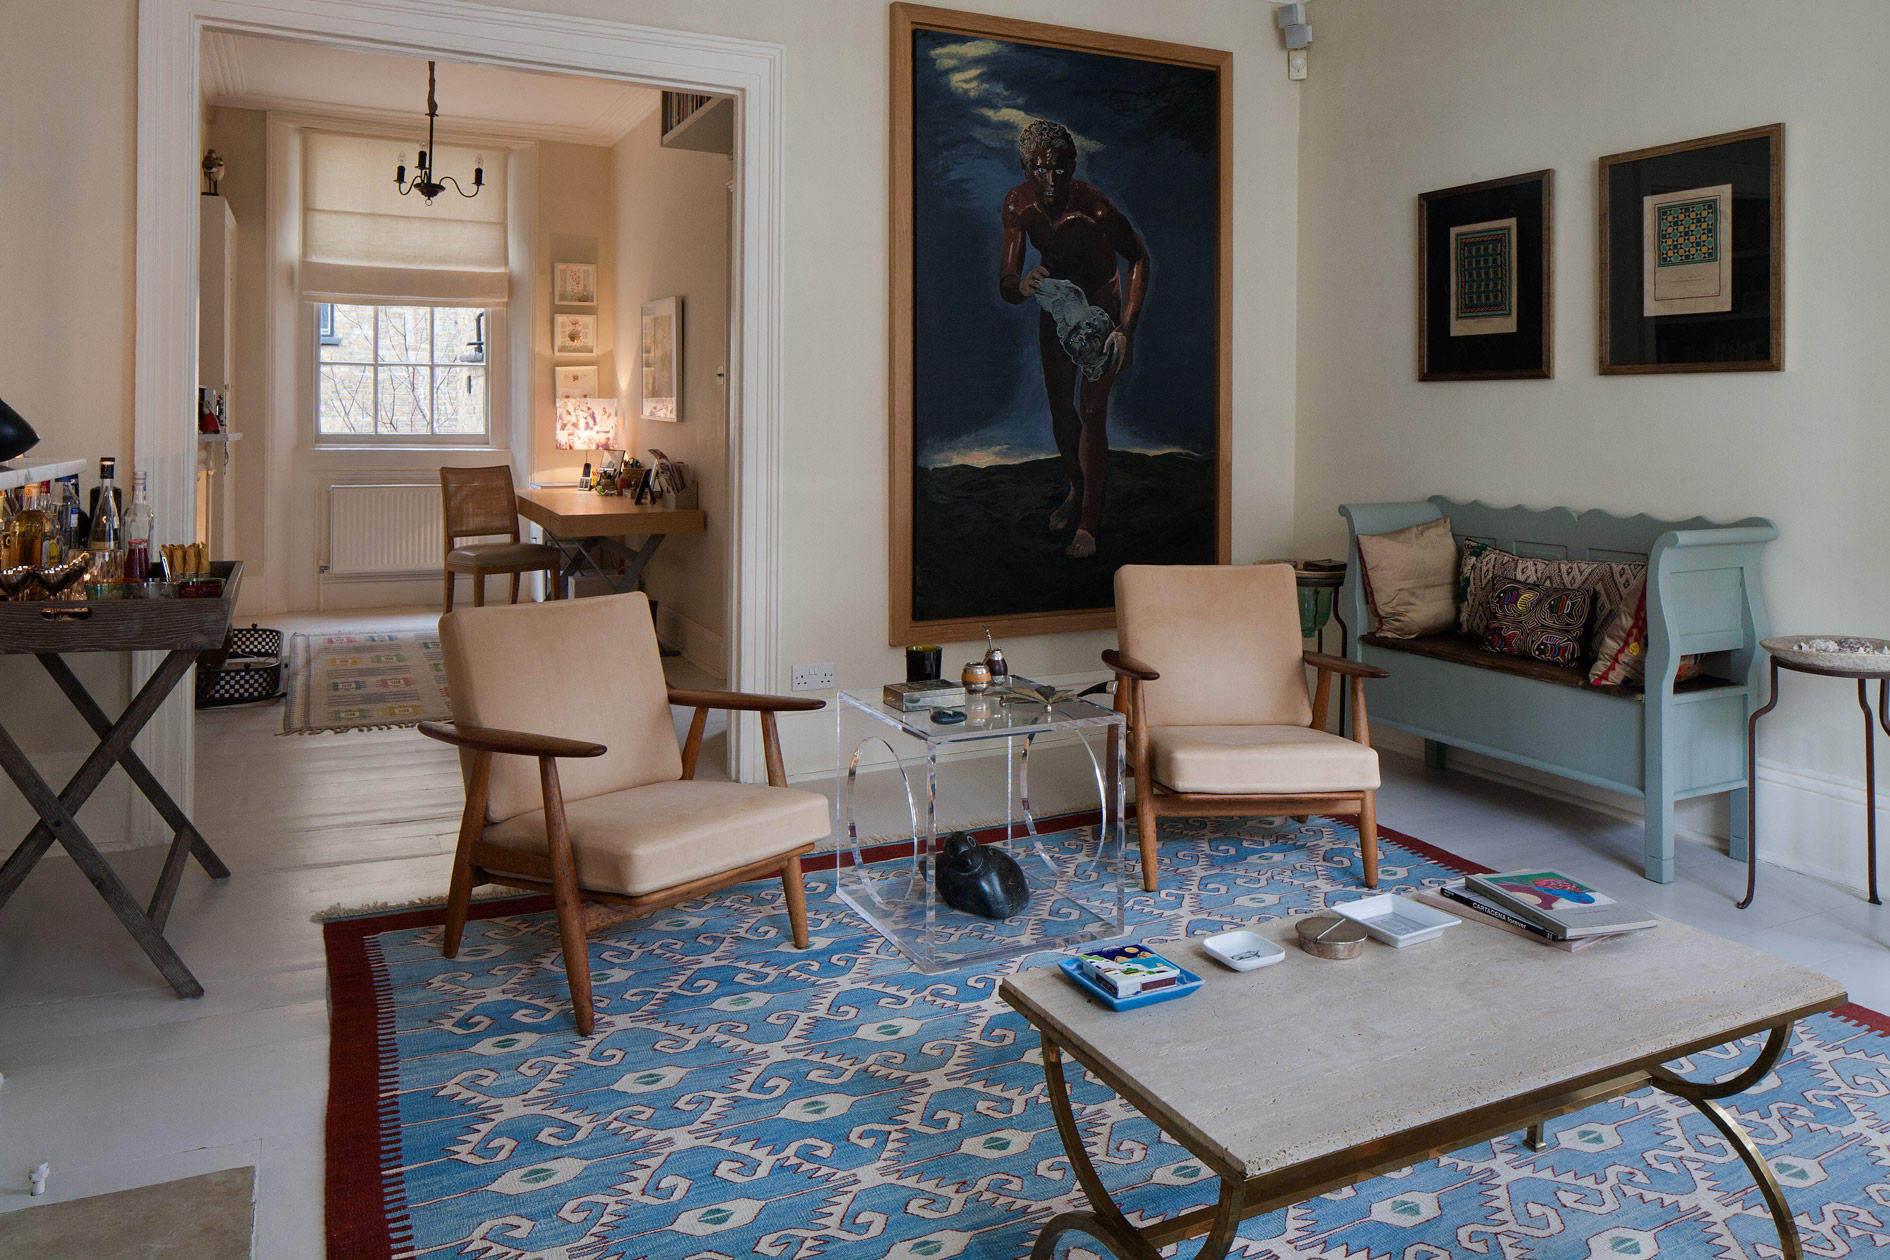 Large painting creates another 'doorway' into and from the room